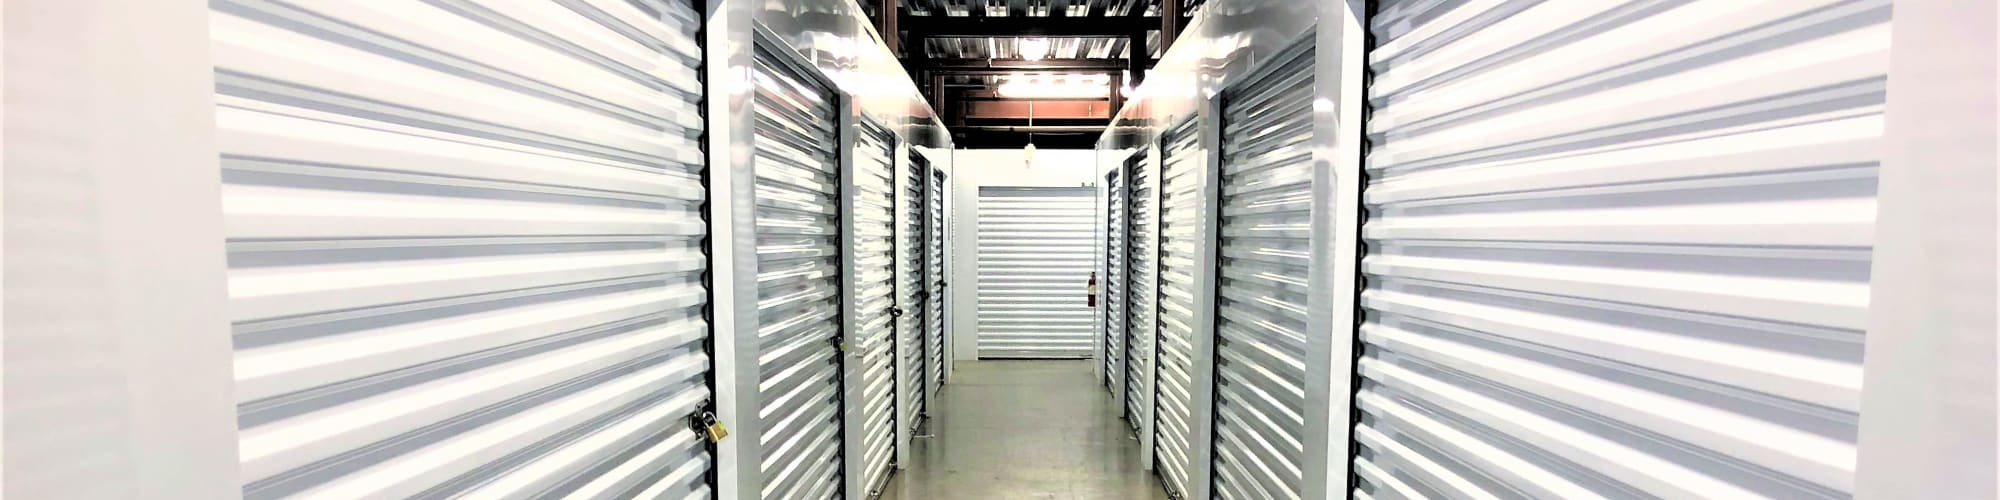 Climate-controlled storage at My Neighborhood Storage Center in Raleigh, North Carolina